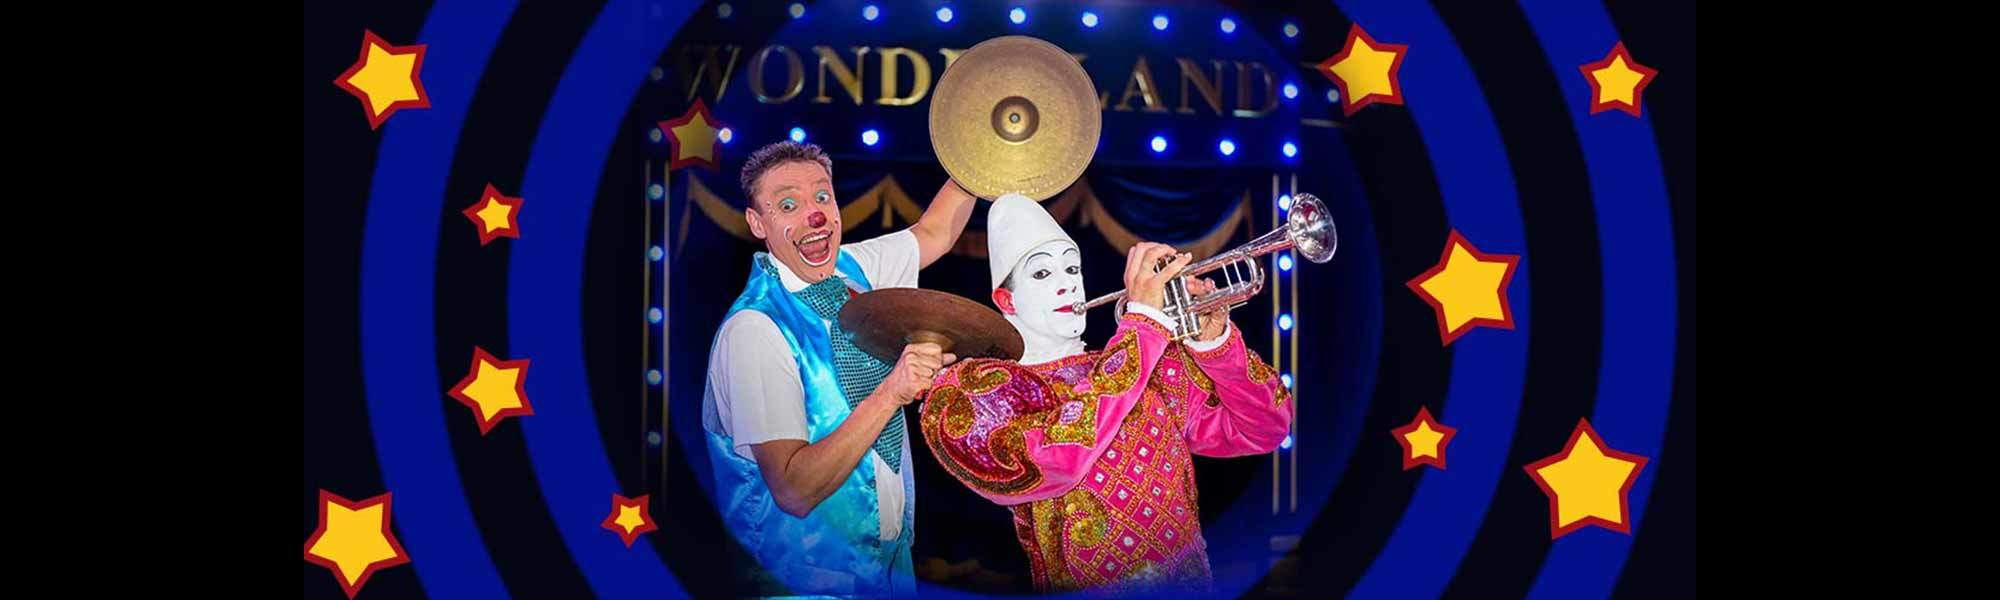 Events for Children Award Winning Laughs at Circus Wonderland in Hemel Hempstead - The UK's Most Magical Circus, Up to 58% off